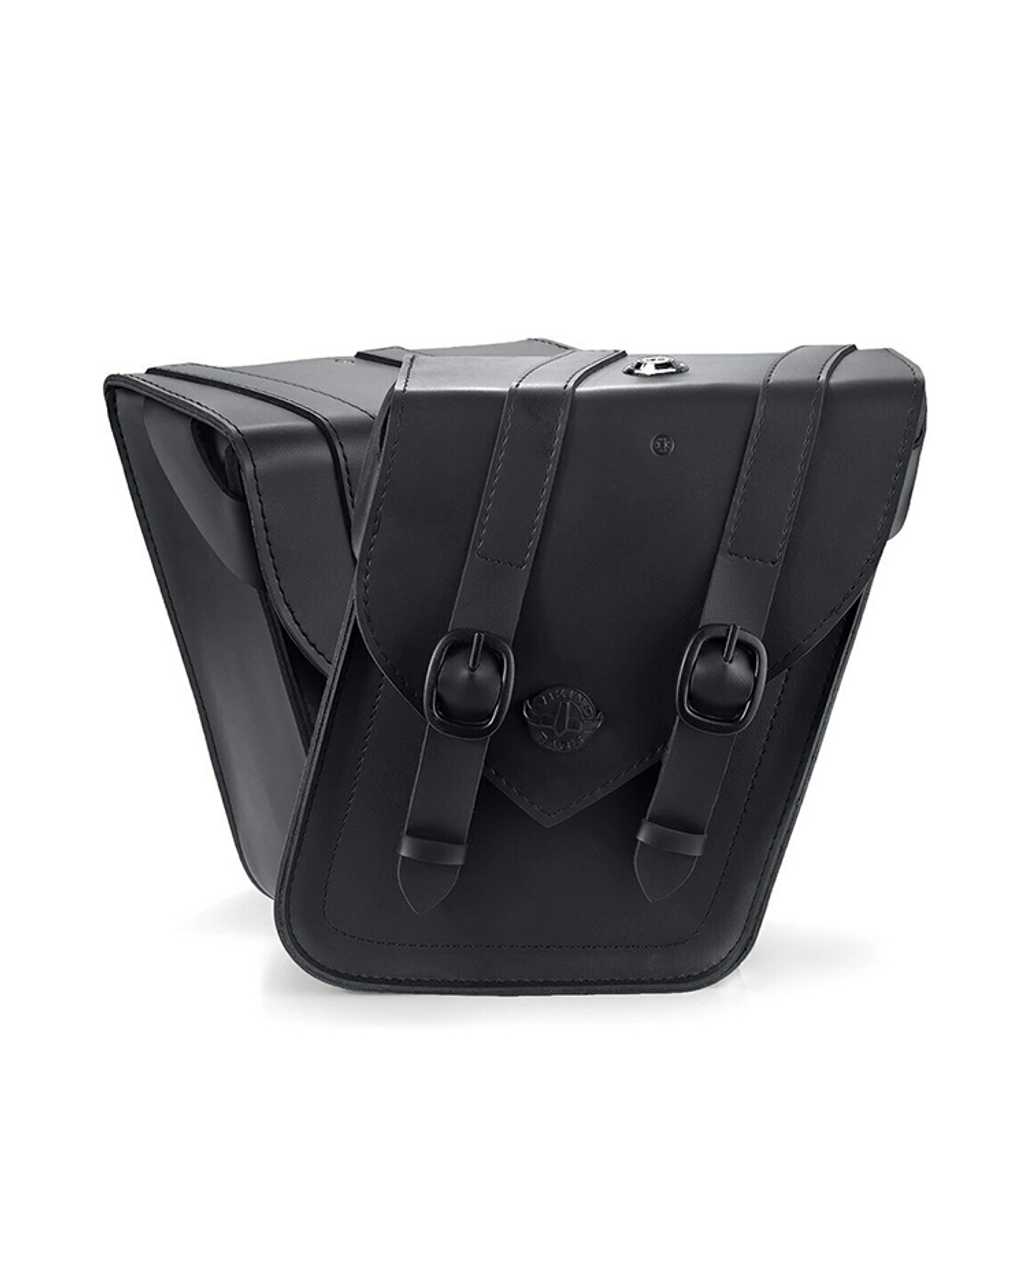 VikingBags Dark Age Double Strap Leather Motorcycle Saddlebags for Harley Sporster Both Bags View